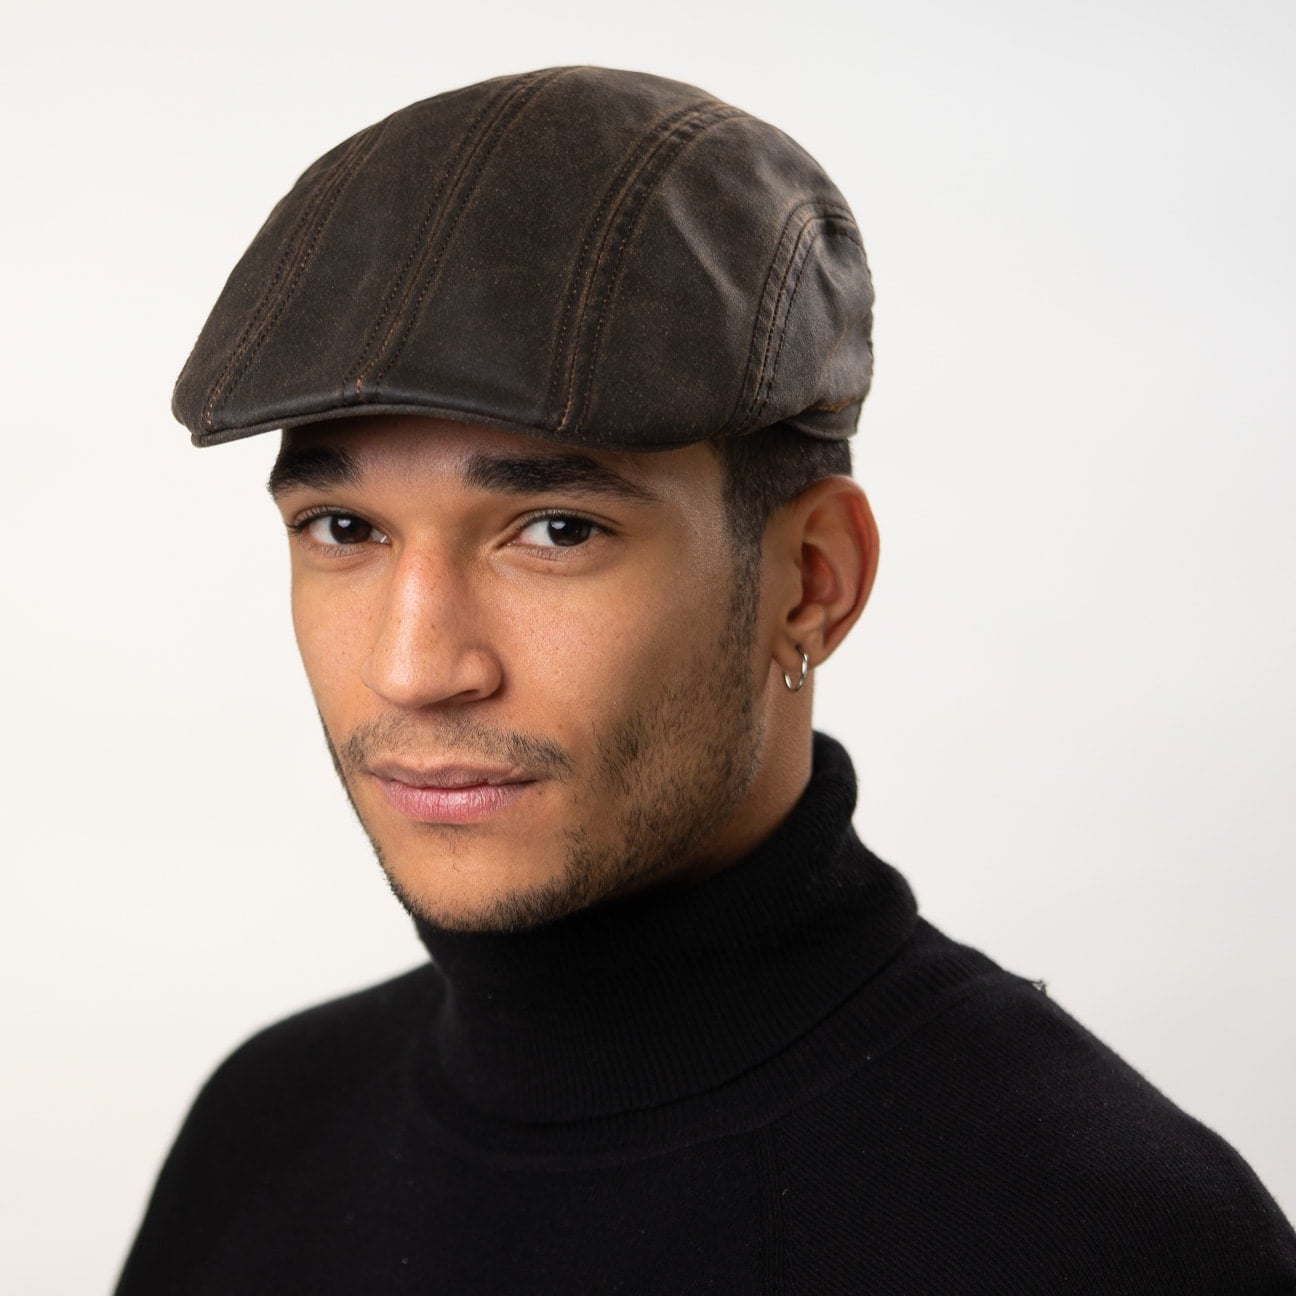 ... Madison Old Cotton Flat Cap by Stetson 1 ... 7c1fc62f265